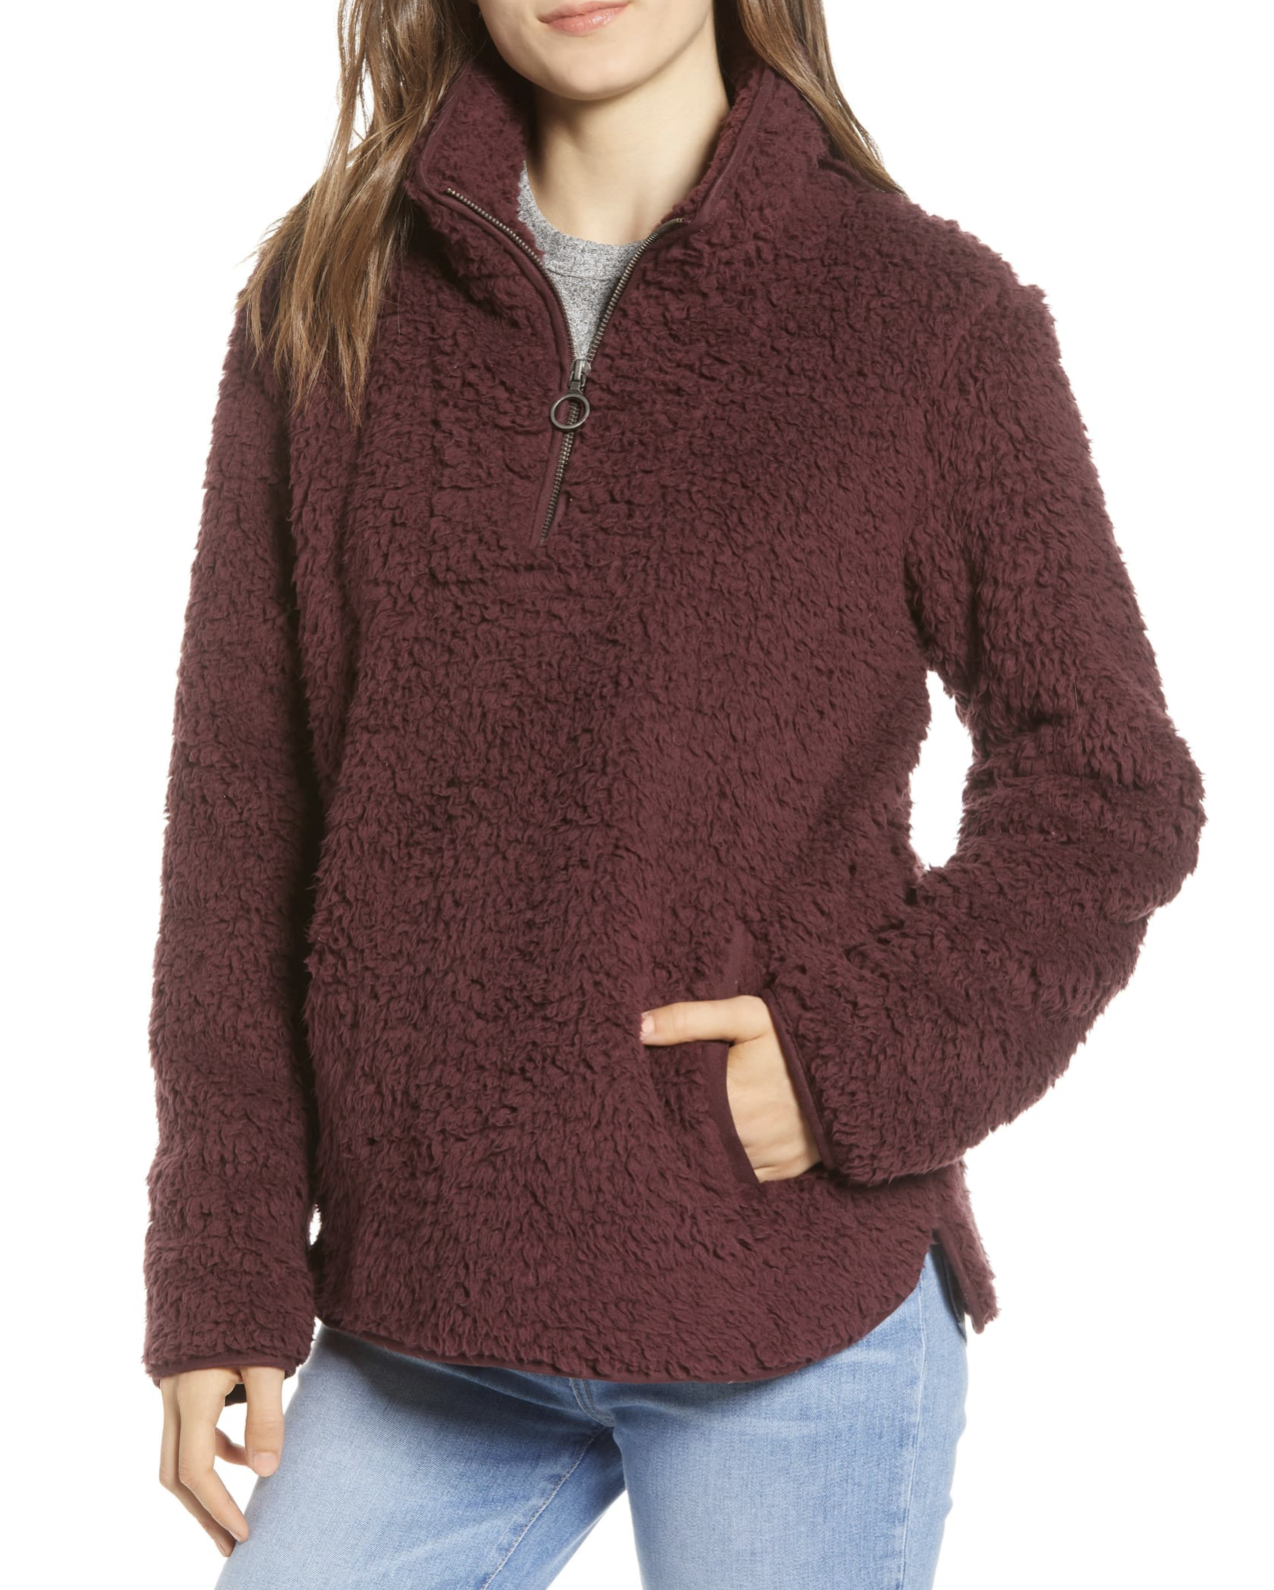 Thread & Supply Wubby Fleece Pullover - $49.90